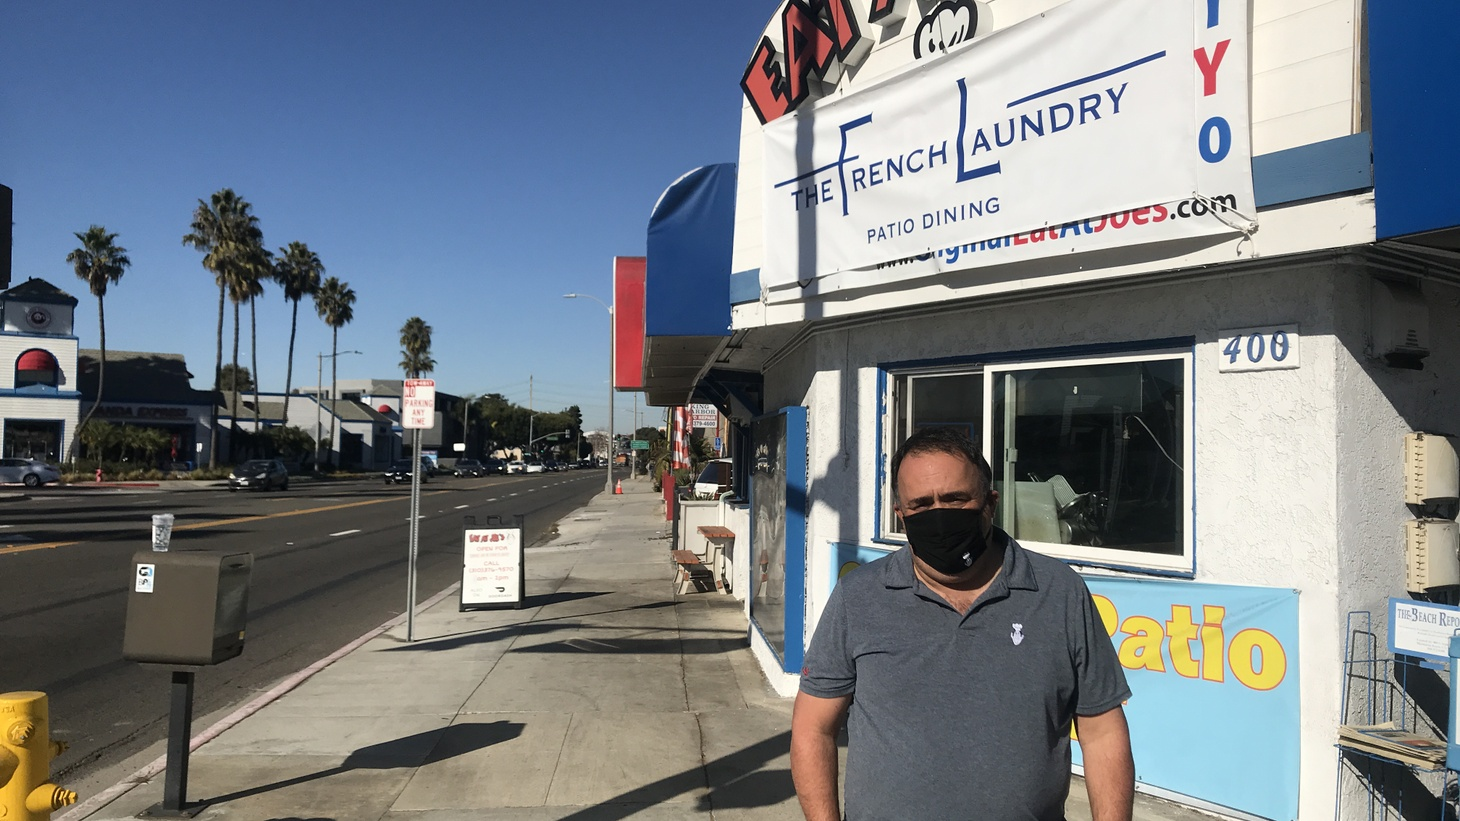 Alex Jordan stands outside his restaurant, Eat at Joe's, in Redondo Beach. His decision to drape a tarp advertising his diner as The French Laundry has ignited a fierce debate over a ban on outdoor dining in Los Angeles County.